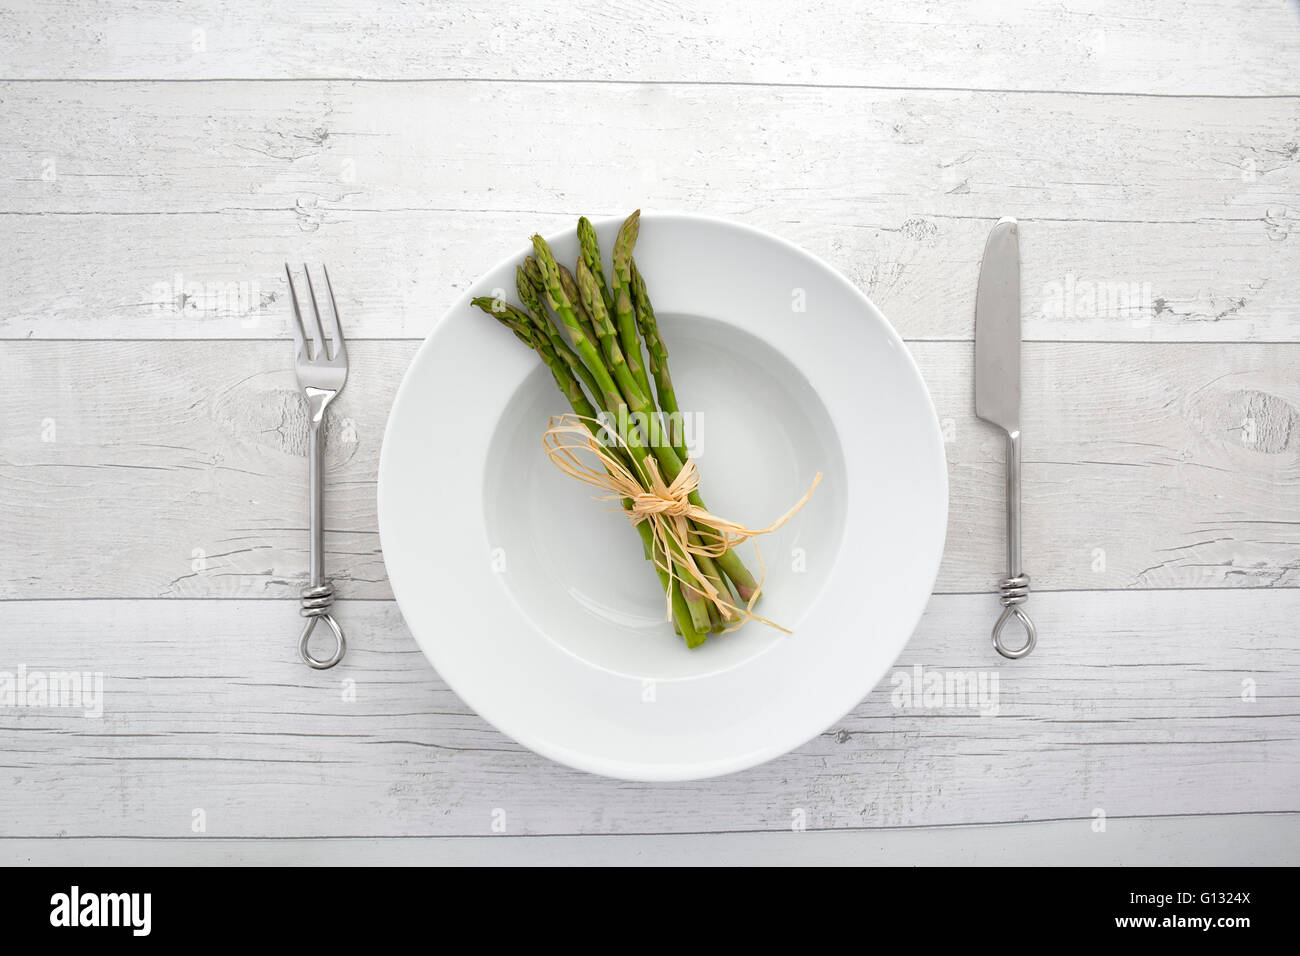 Overhead view of fresh green asparagus on a white plate over a retro wooden background - Stock Image